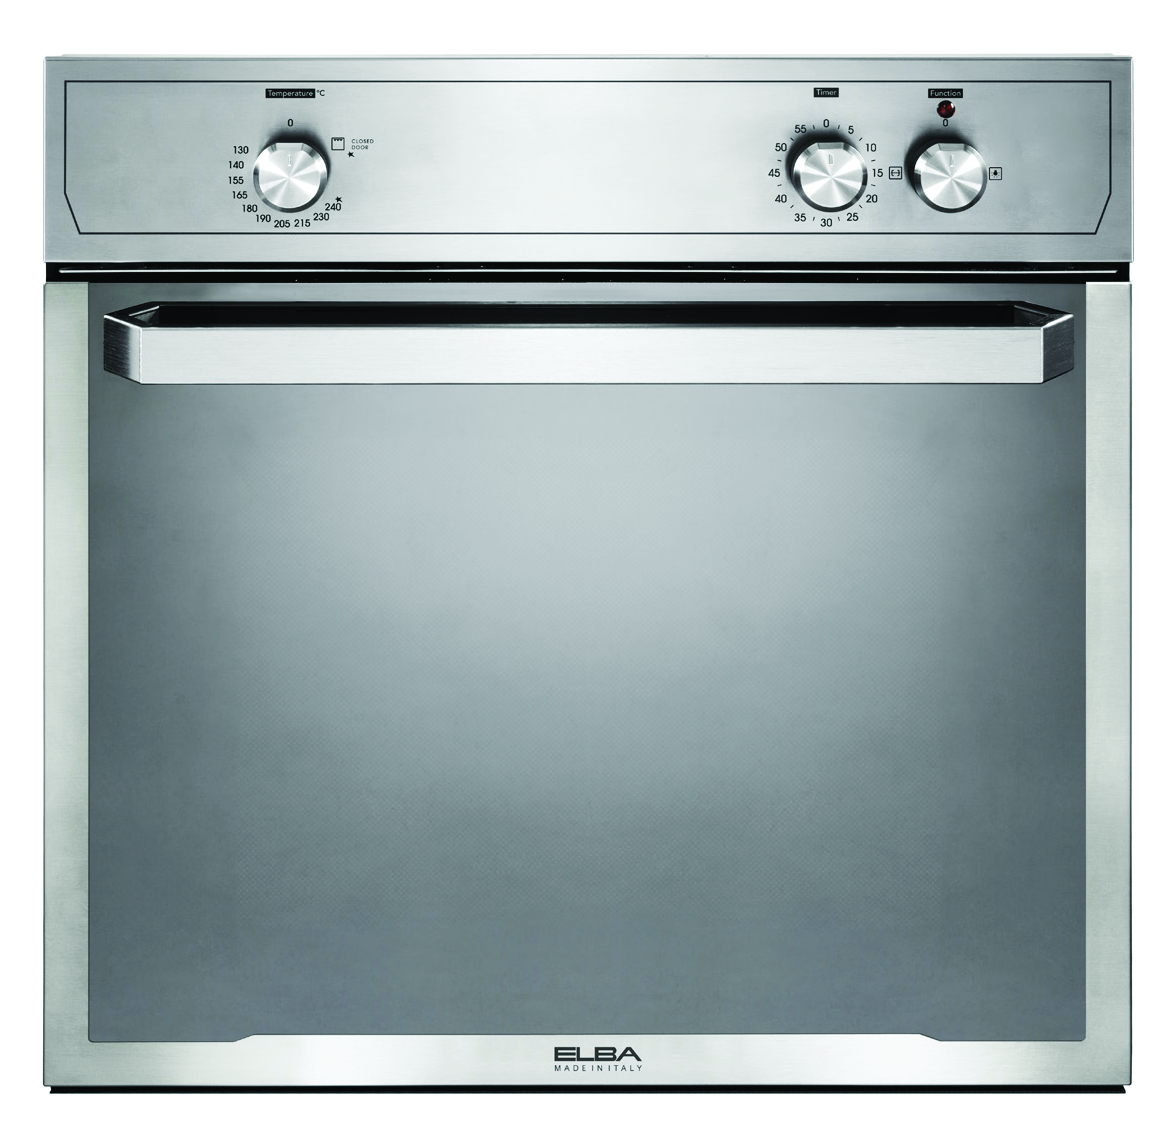 elba-600-mm-built-in-gas-oven-stainless-steel-02elio-721